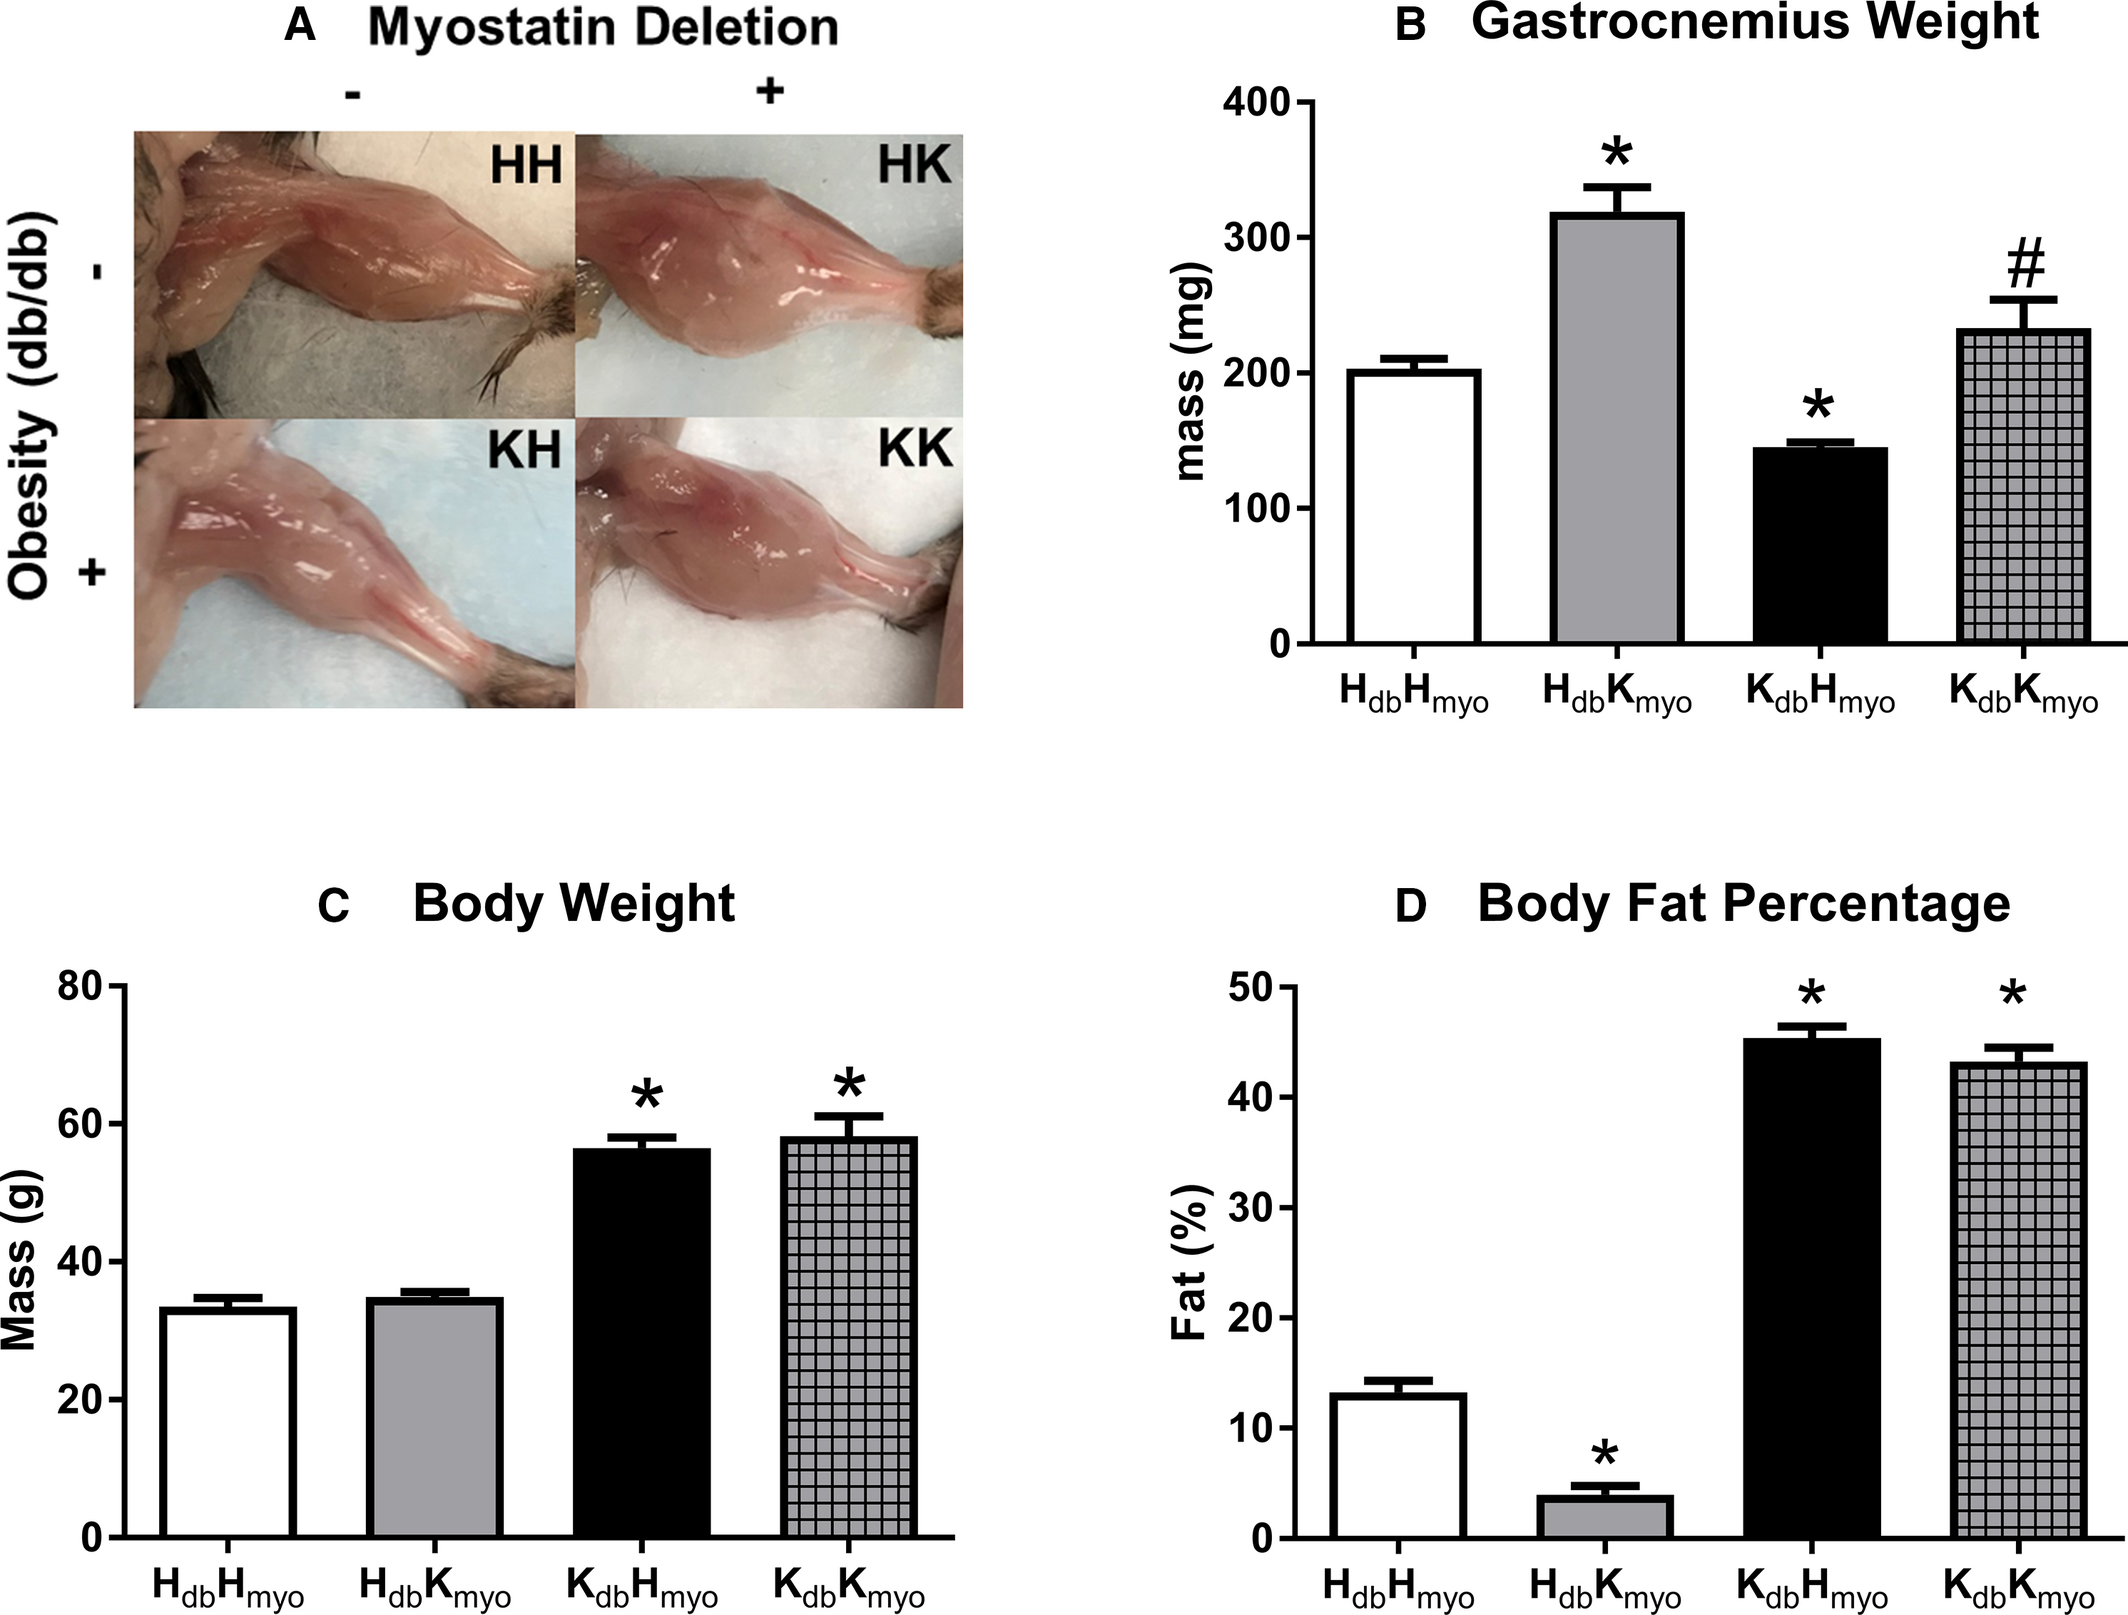 Increased Muscle Mass Protects Against Hypertension and